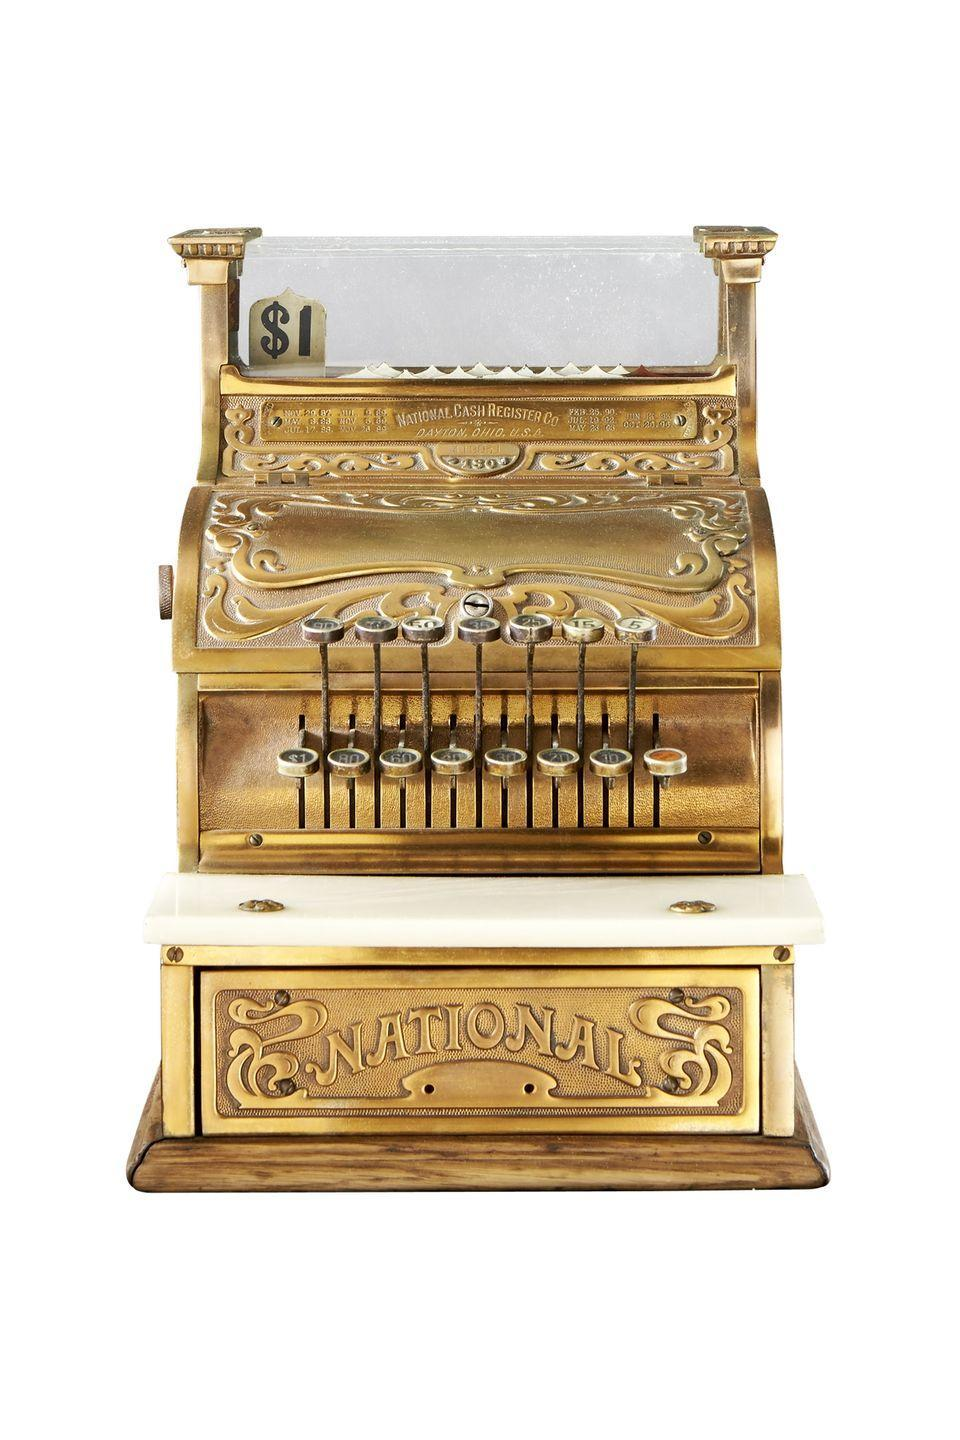 <p><strong>What it was worth (2015):</strong> $900</p><p><strong>What it's worth now</strong>: $1,000</p><p>Vintage machines from National Cash Register — now called NCR Corporation — are often appraised for thousands of dollars. </p>